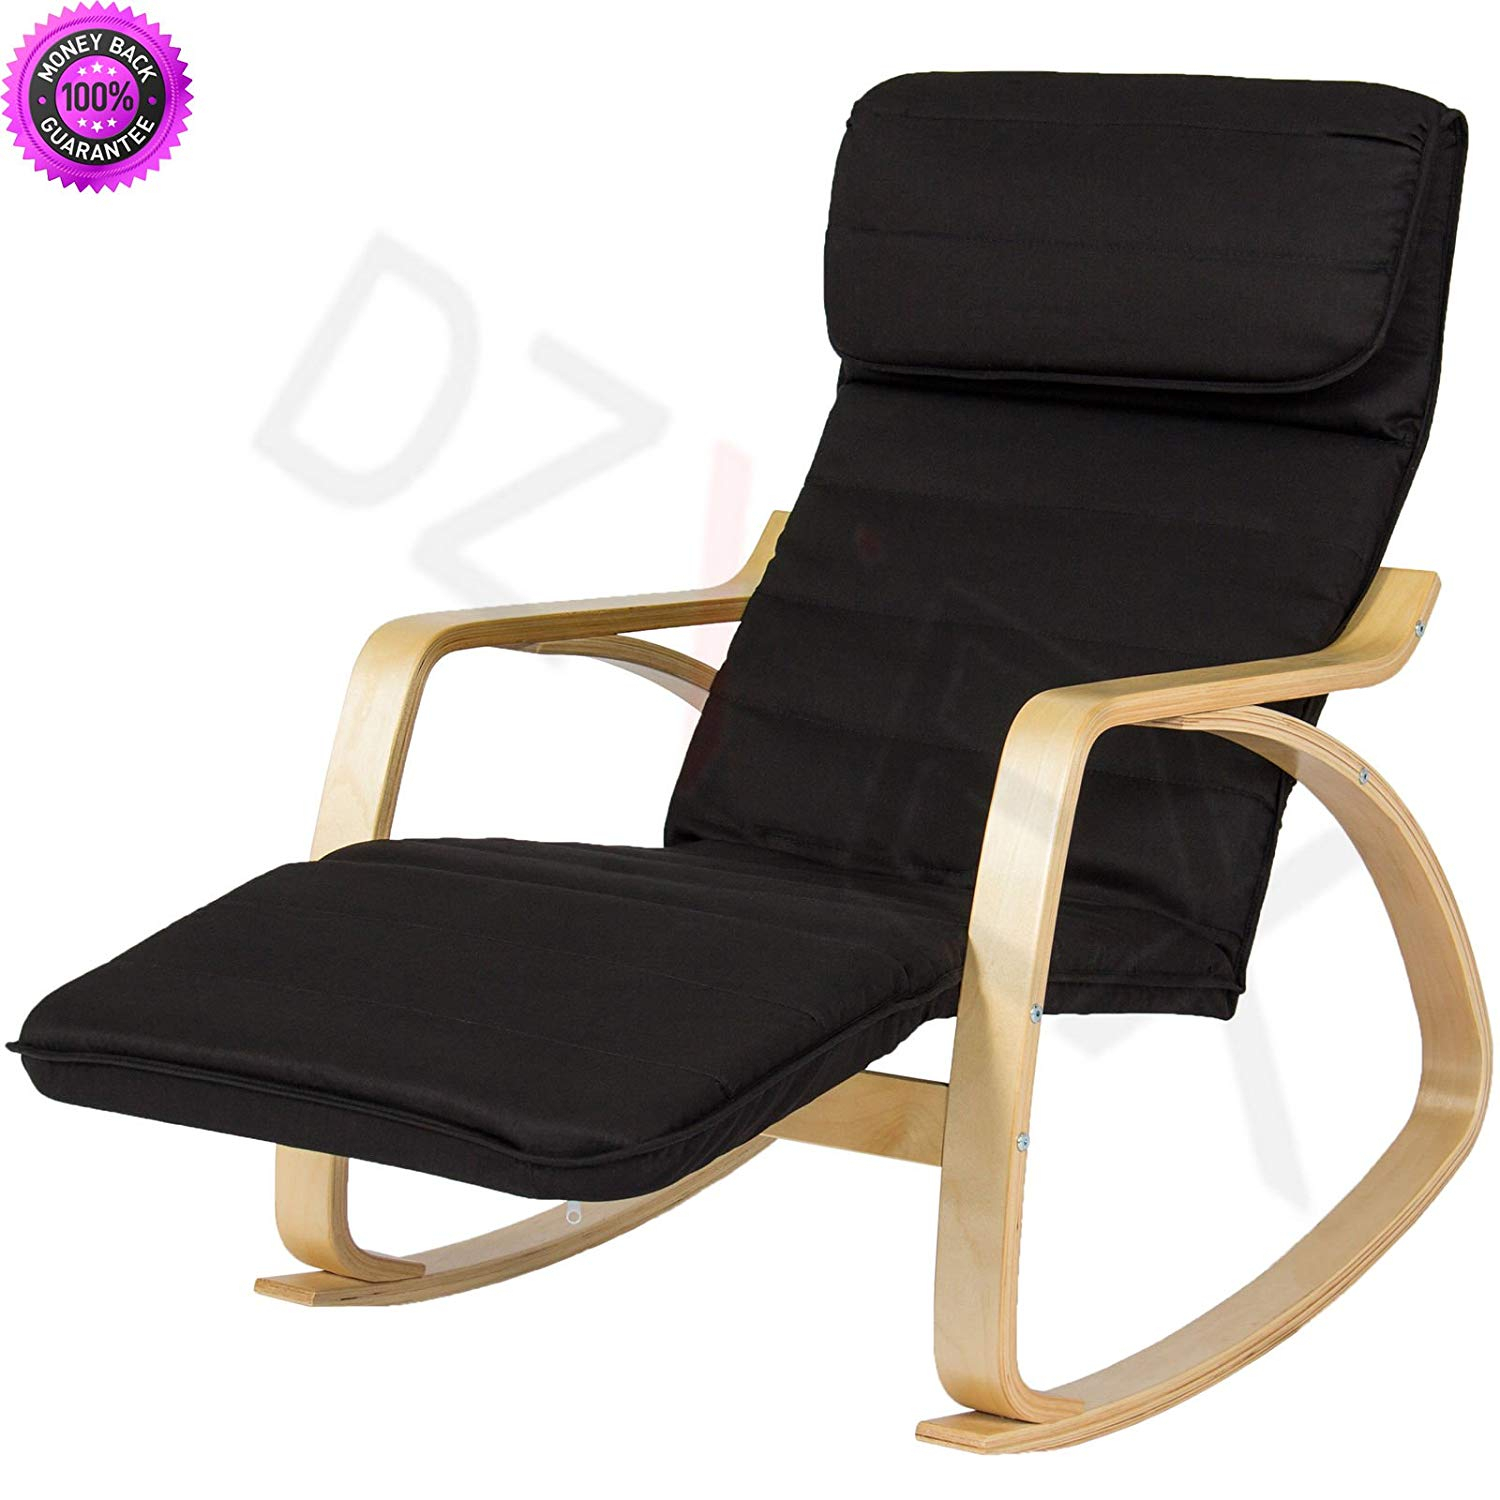 Cheap Rocking Chair Bentwood, Find Rocking Chair Bentwood With Regard To Folding Bentwood Rocking Chairs With Extendable Footrest And Removable Cover (#9 of 20)